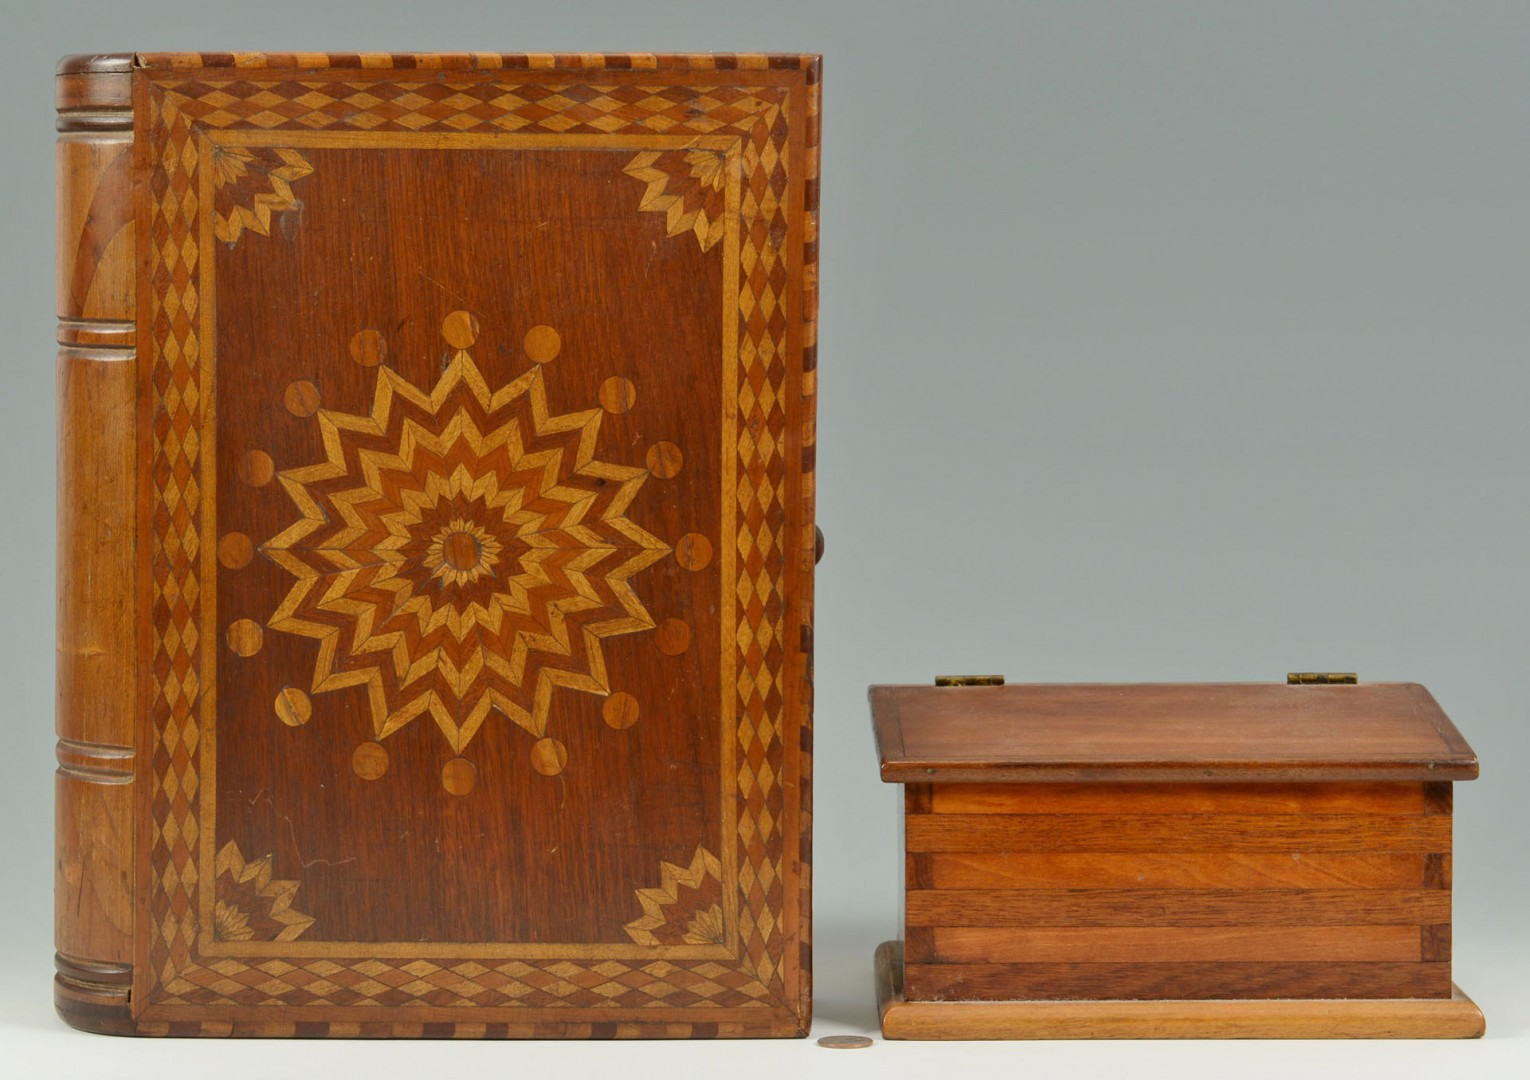 Lot of two folk art inlaid boxes, one book box